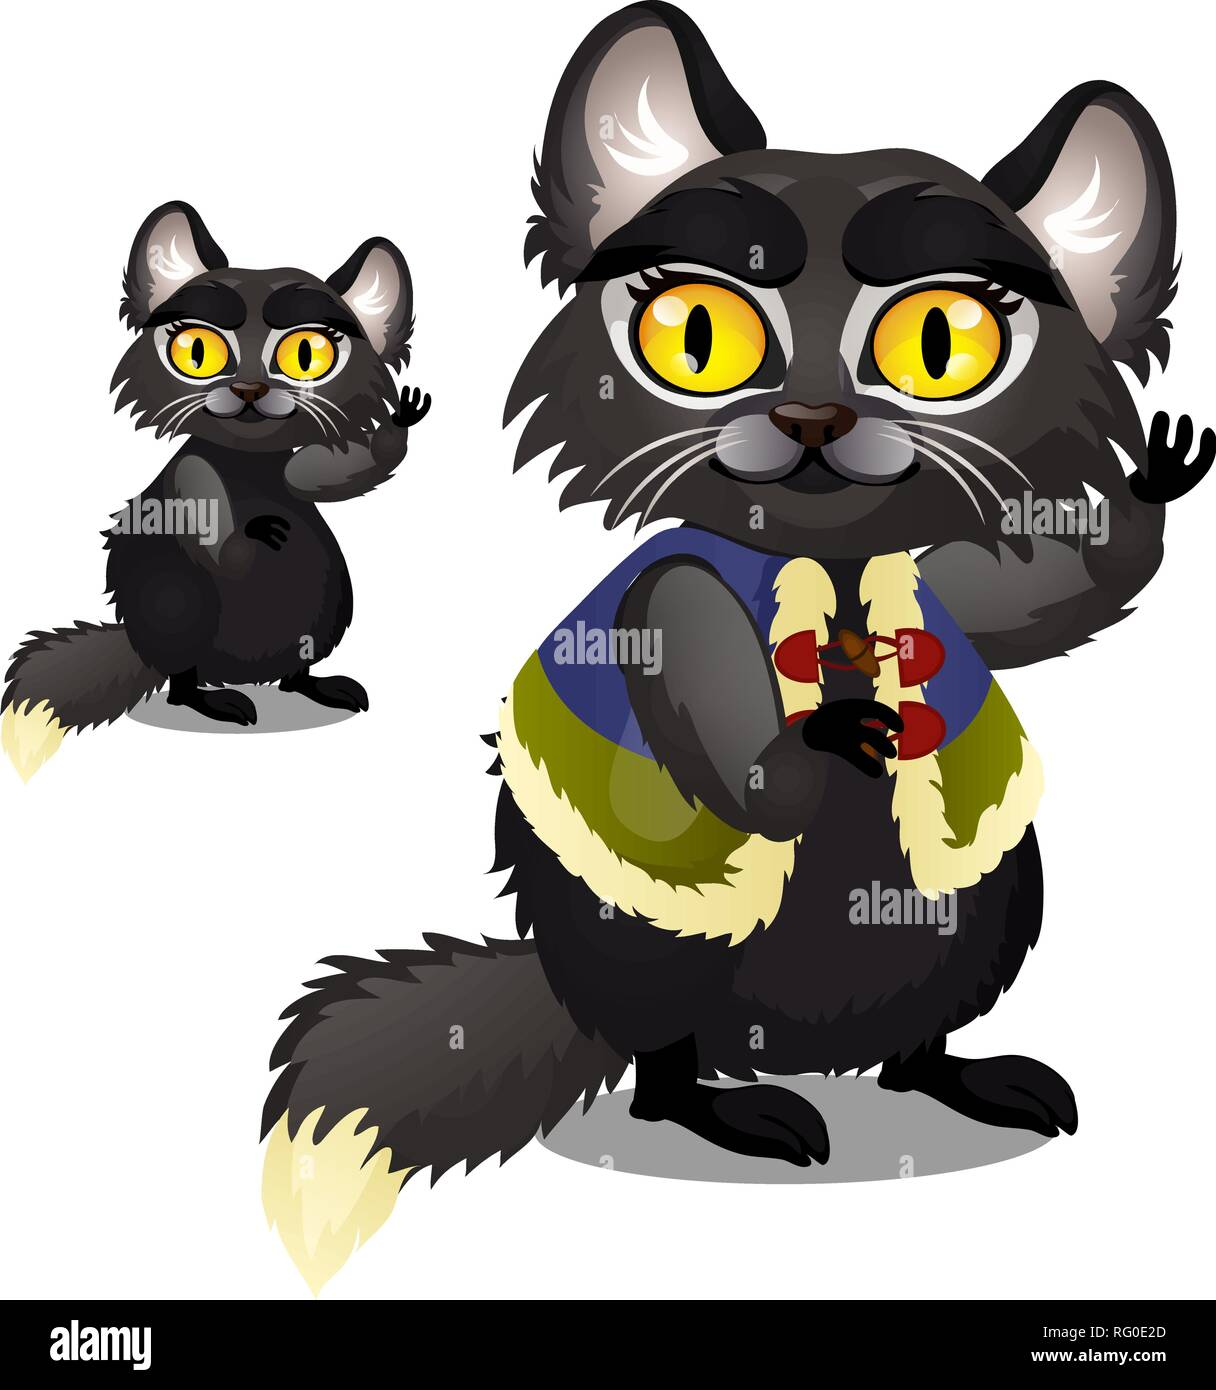 Sly animated black furry cat with yellow eyes in a vest isolated on white background. Vector cartoon close-up illustration. - Stock Vector